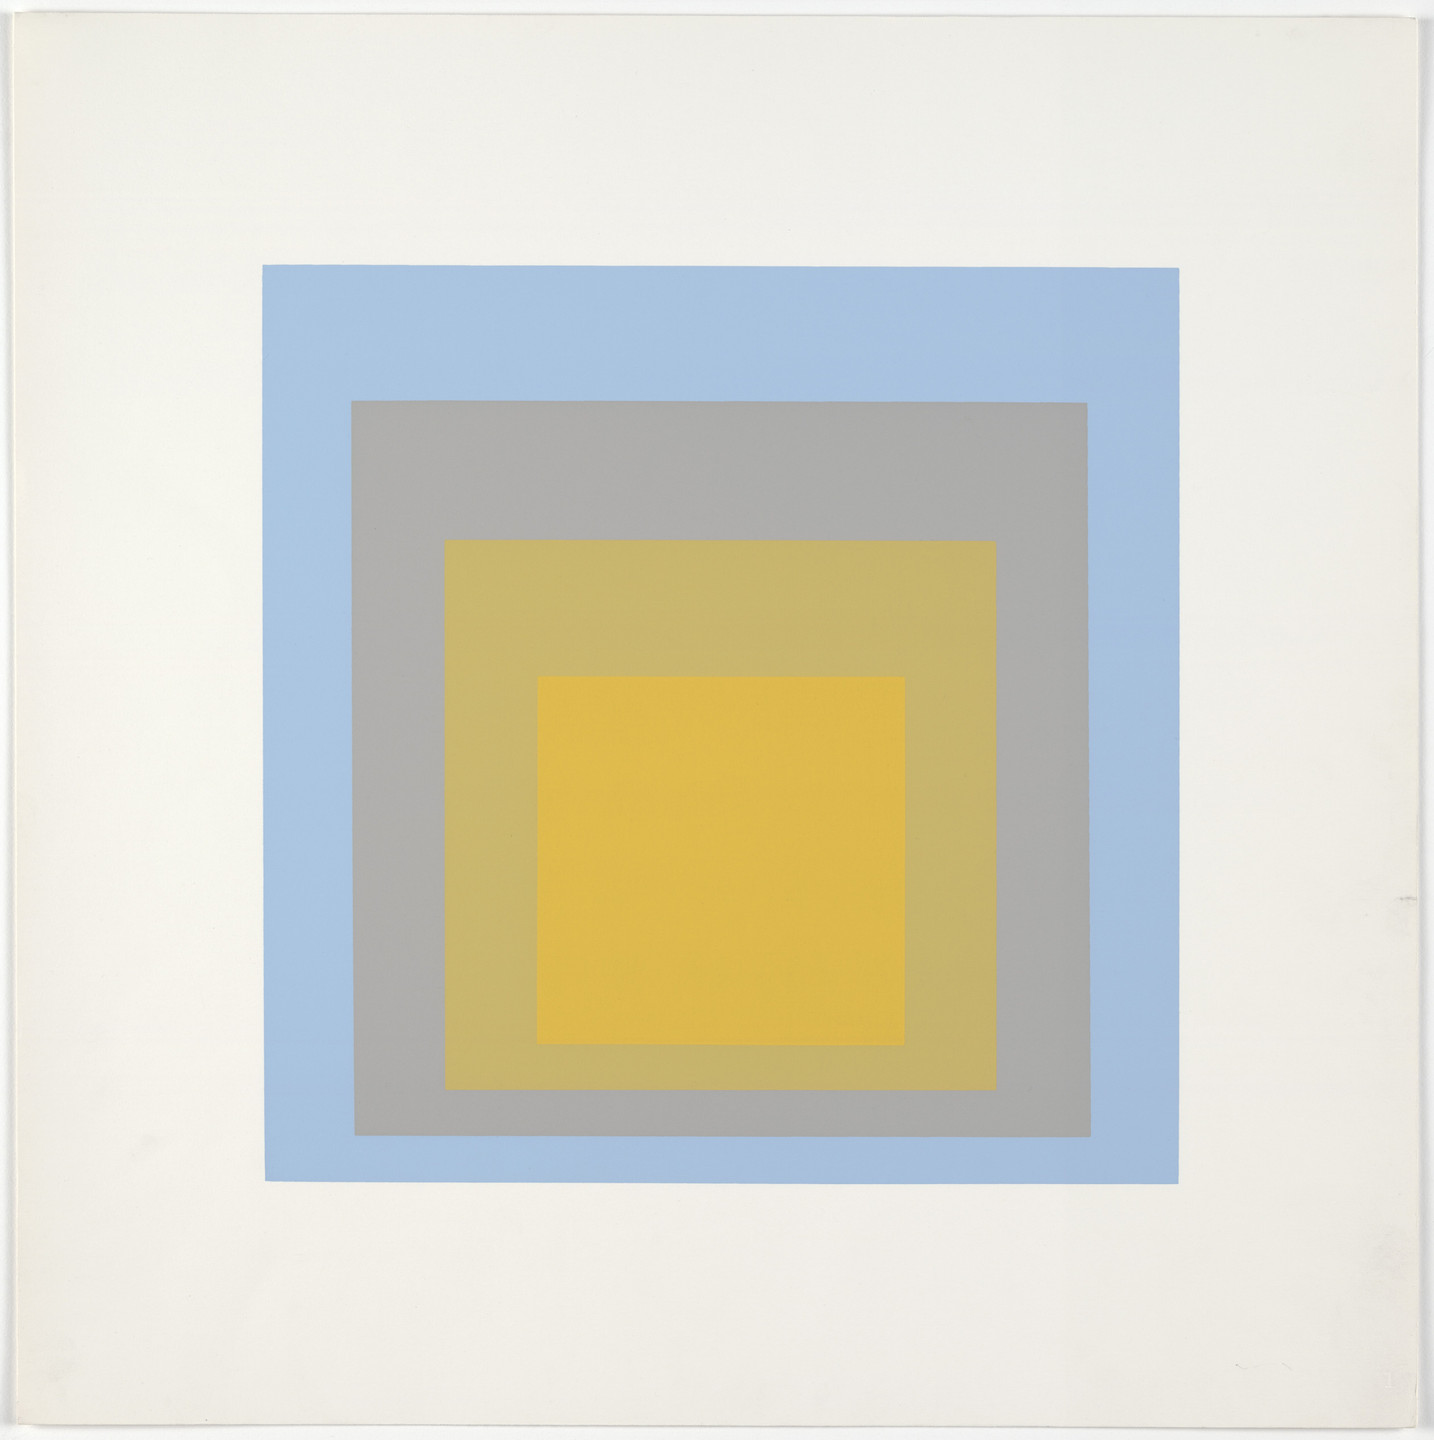 Josef Albers. Homage to the Square: Ten Works by Josef Albers. 1962